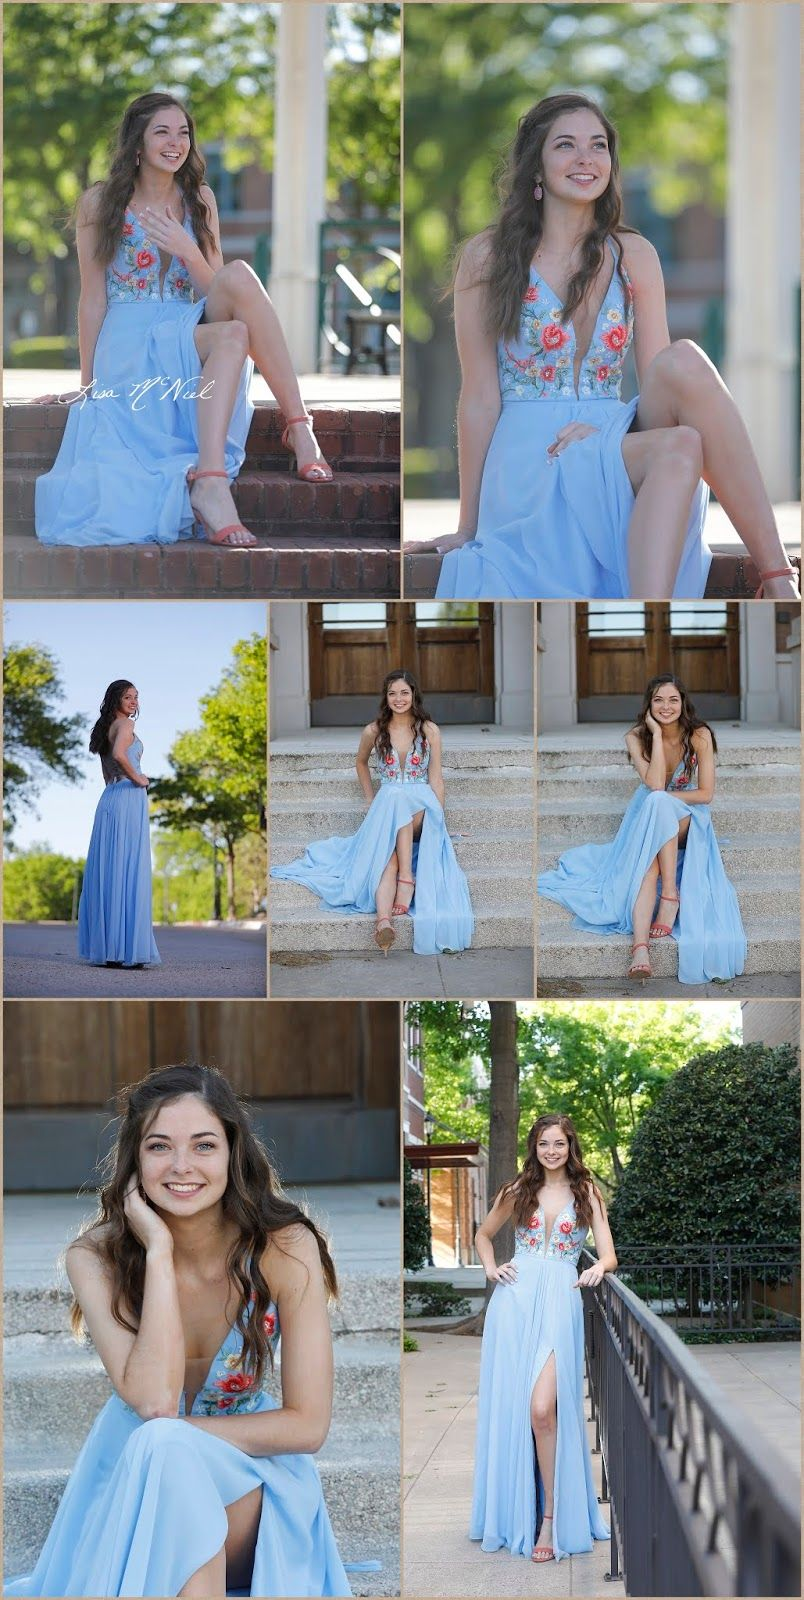 7 Tips for How and Where to take Prom Pictures - Styles - Dallas Photographer Lisa McNiel